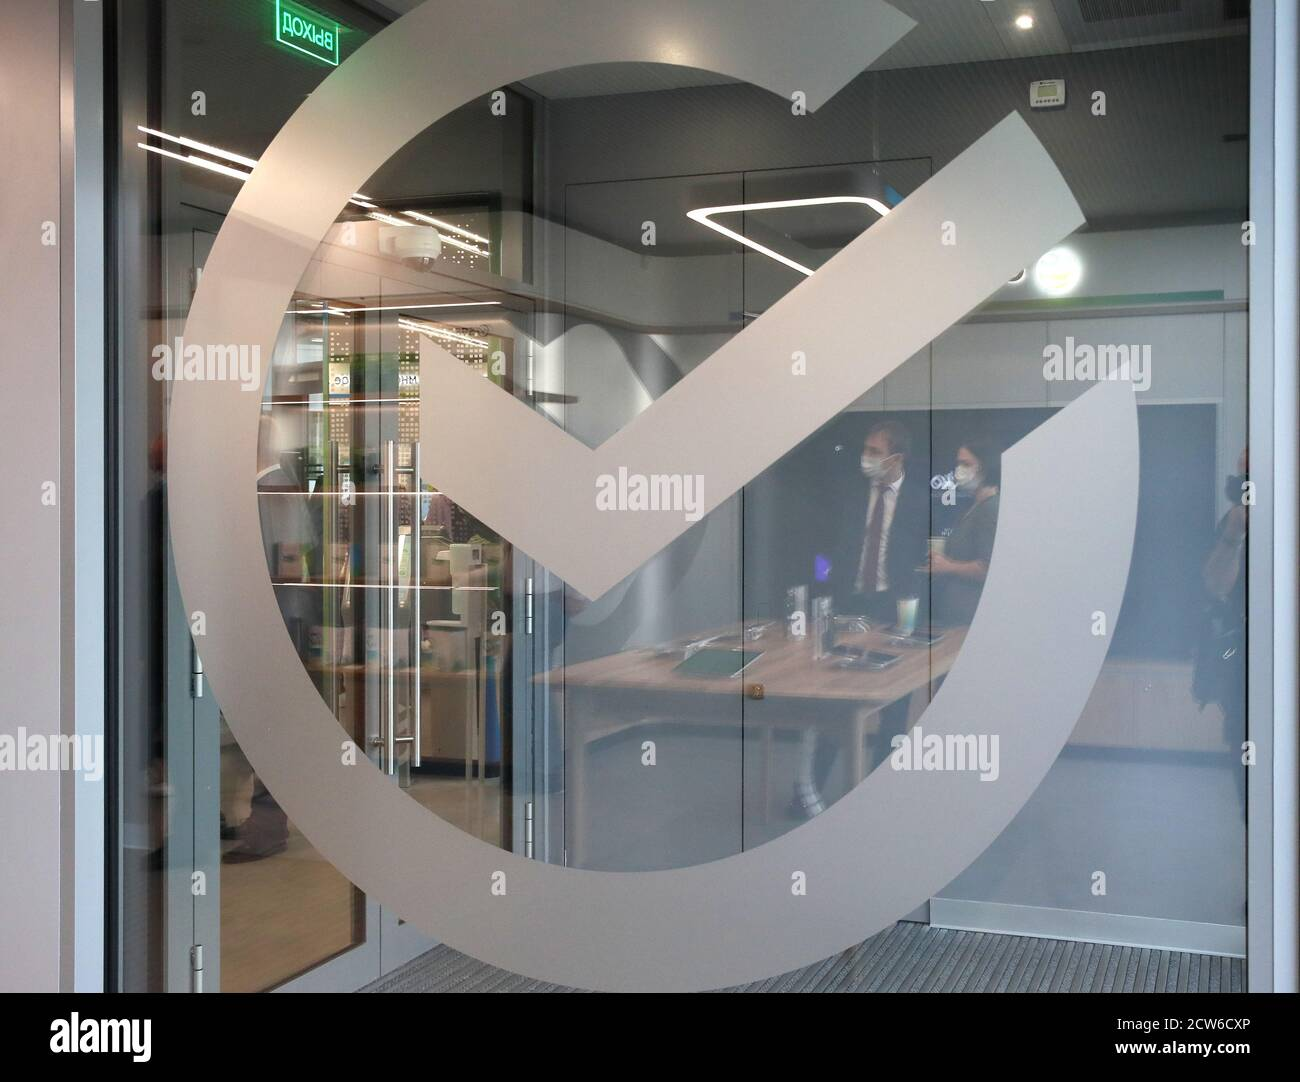 Moscow, Russia. 28th Sep, 2020. An interior view of a brand new format branch opened by Sberbank on Tsvetnoy Boulevard in central Moscow. On September 24, Sberbank announced major changes to the brand, introducing its own Sber ecological system with adjacent services, biometric ATMs, an office design without bank teller windows, a smart set-top box and digital assistants as well as a new company logo. Credit: Vladimir Gerdo/TASS/Alamy Live News Stock Photo